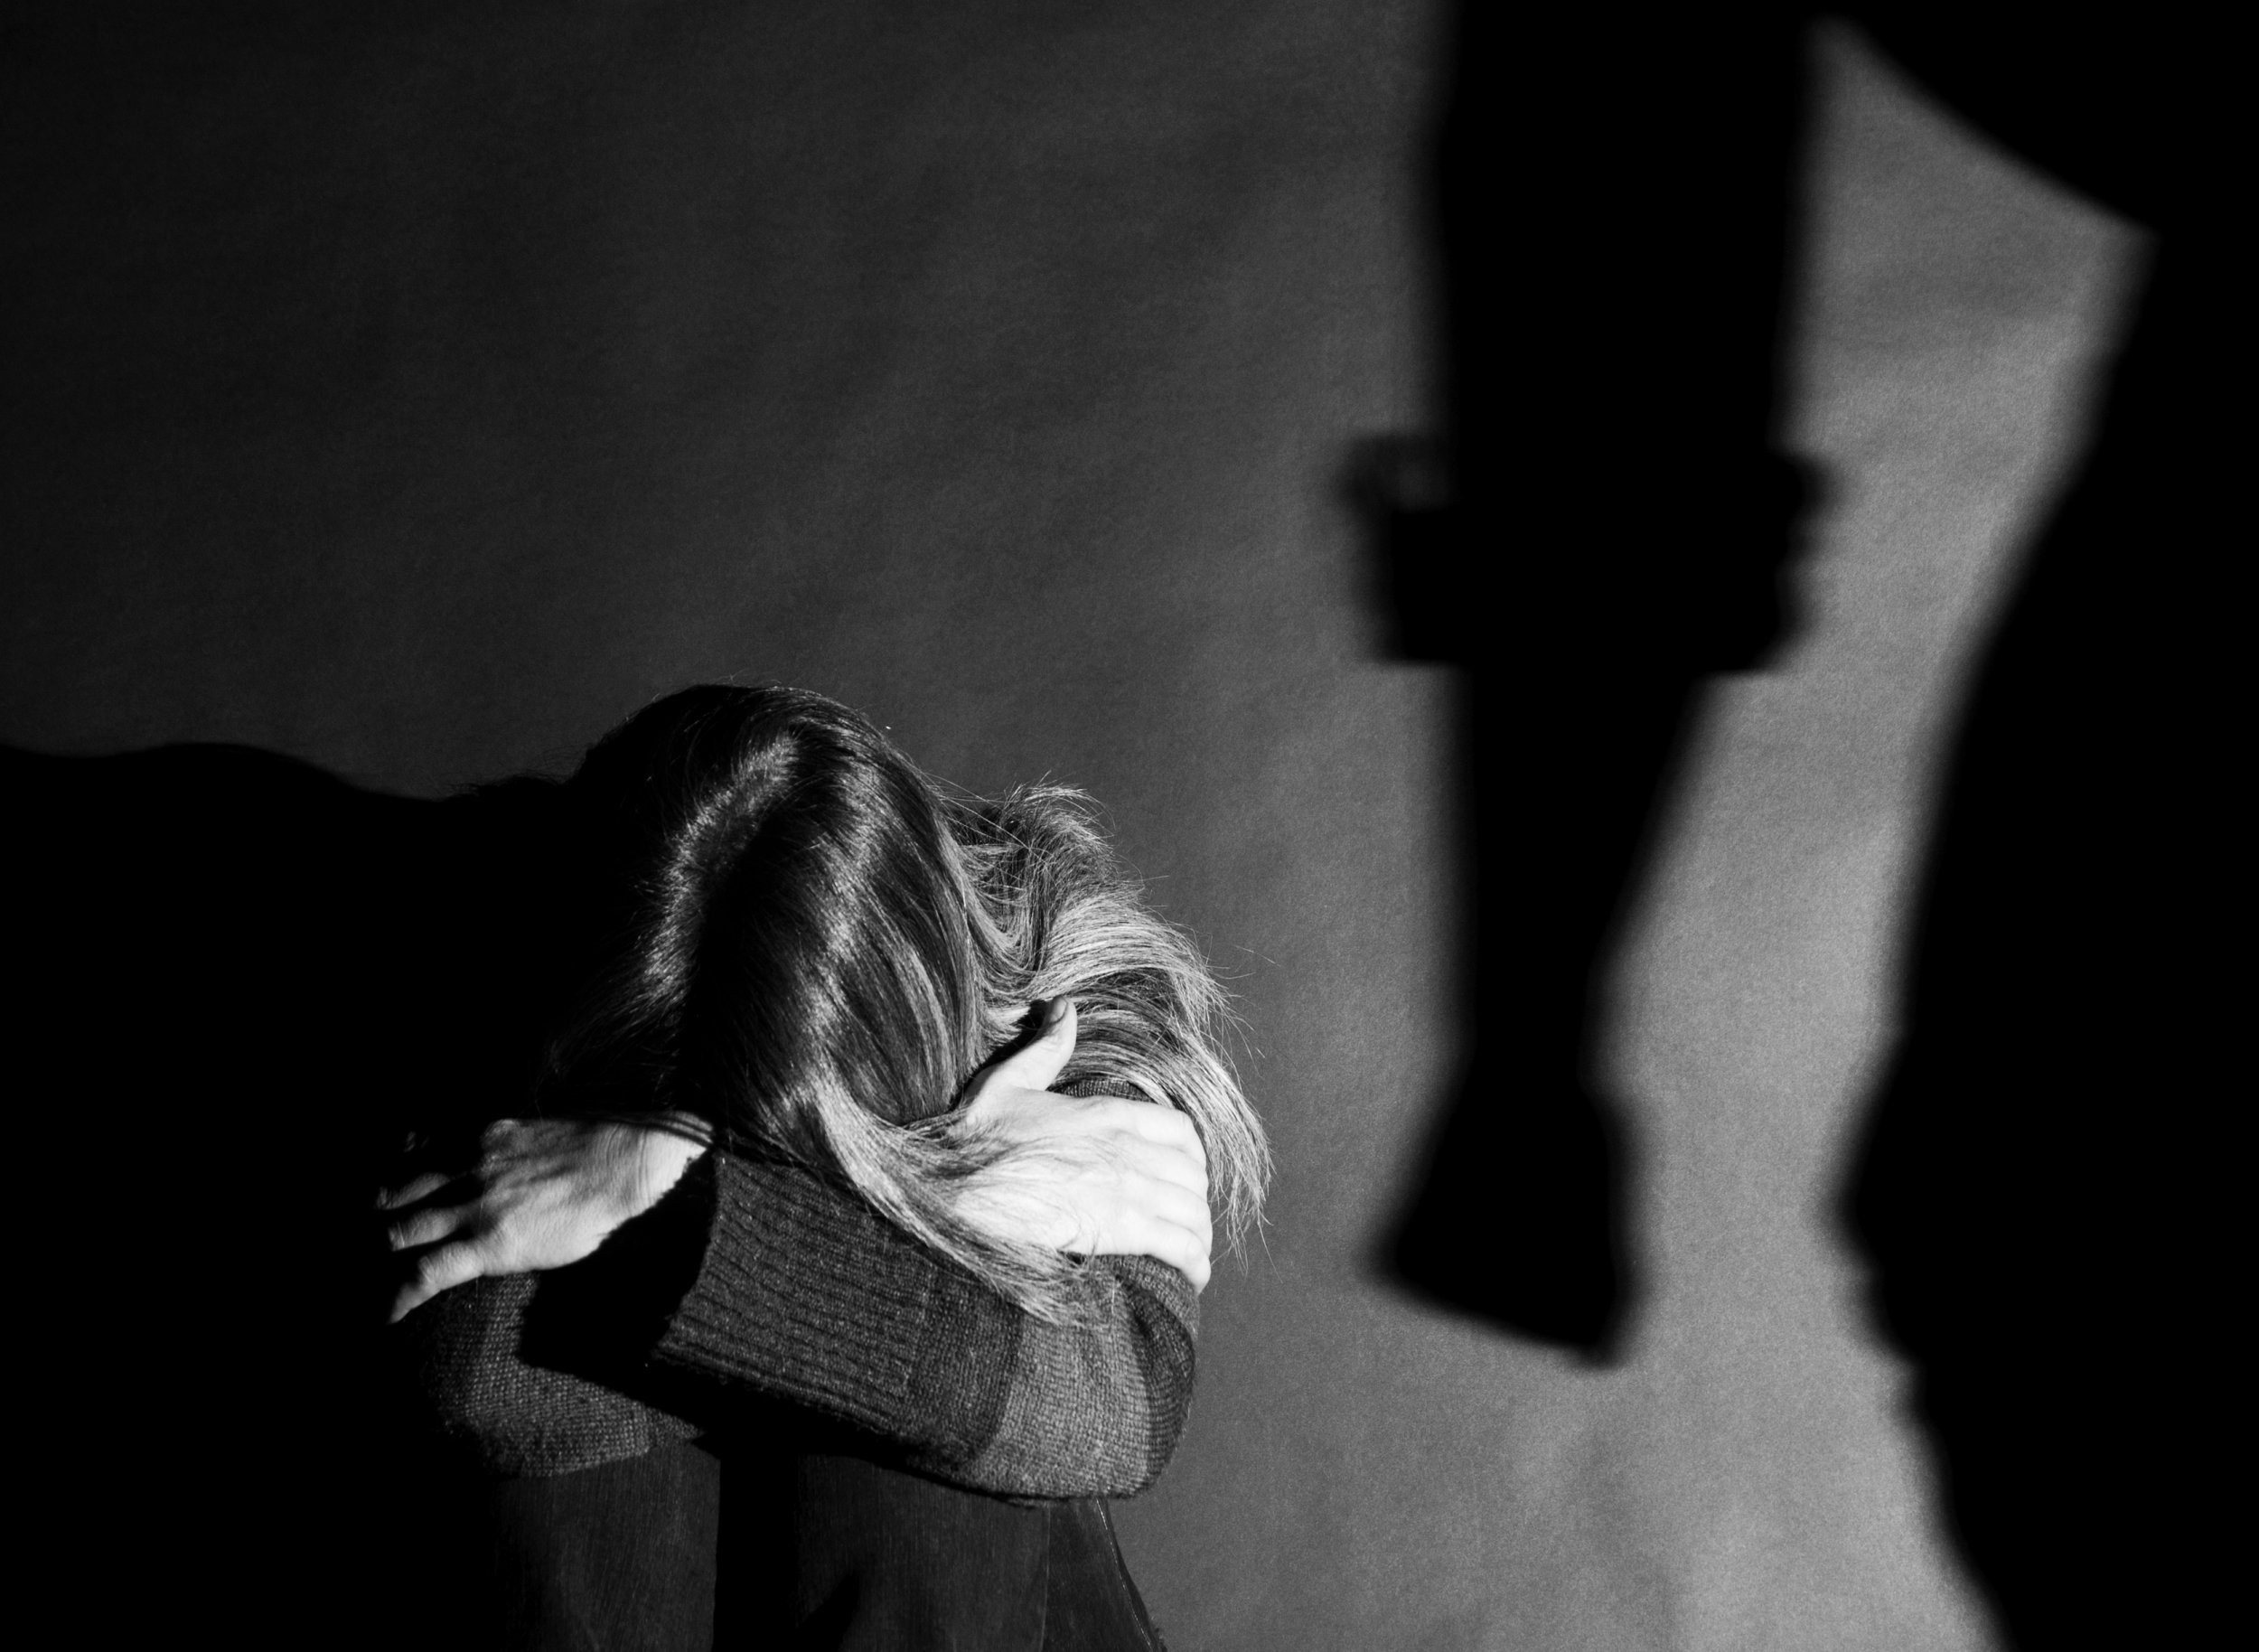 Domestic abuse charities to contact if you need help during lockdown